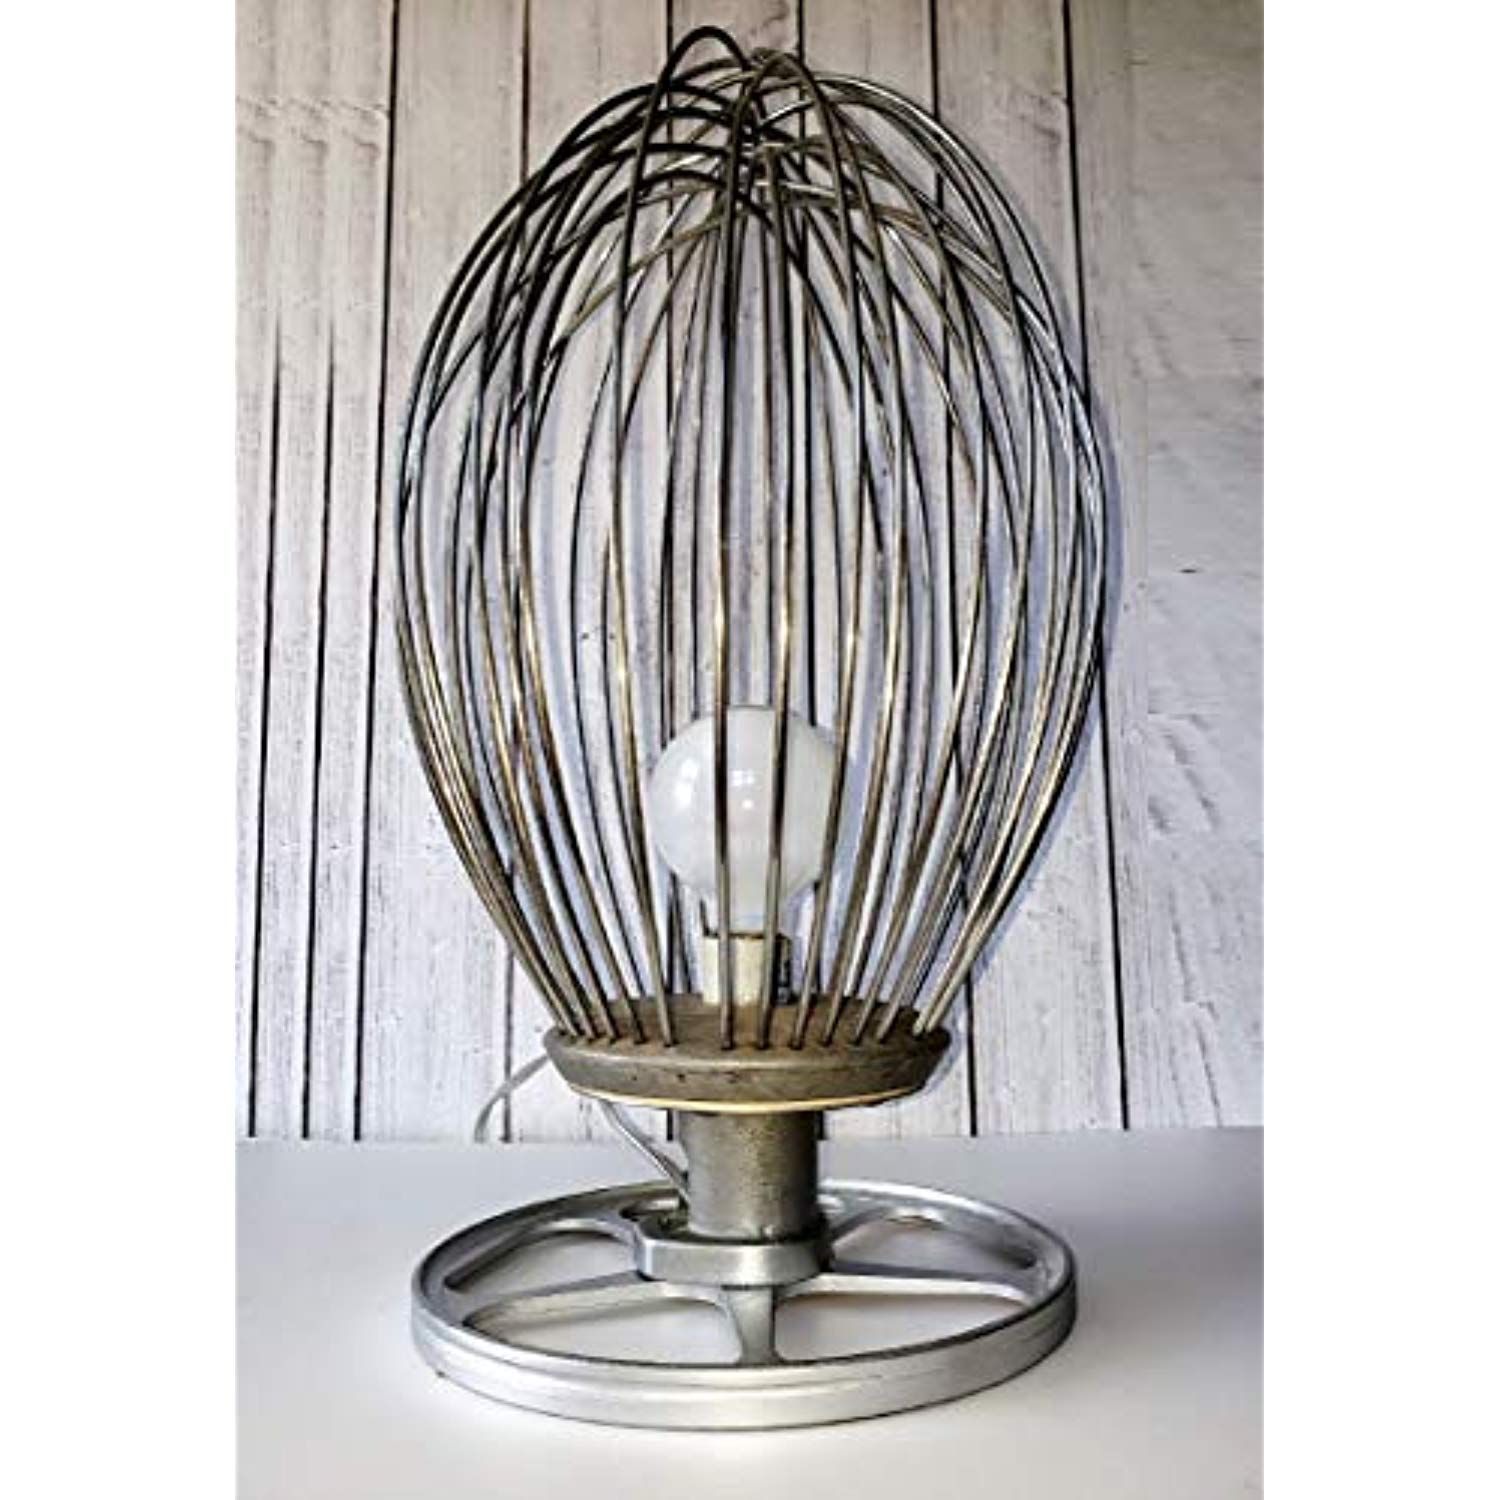 Farmhouse Style Industrial Mixer Whip Table Lamp, Rustic